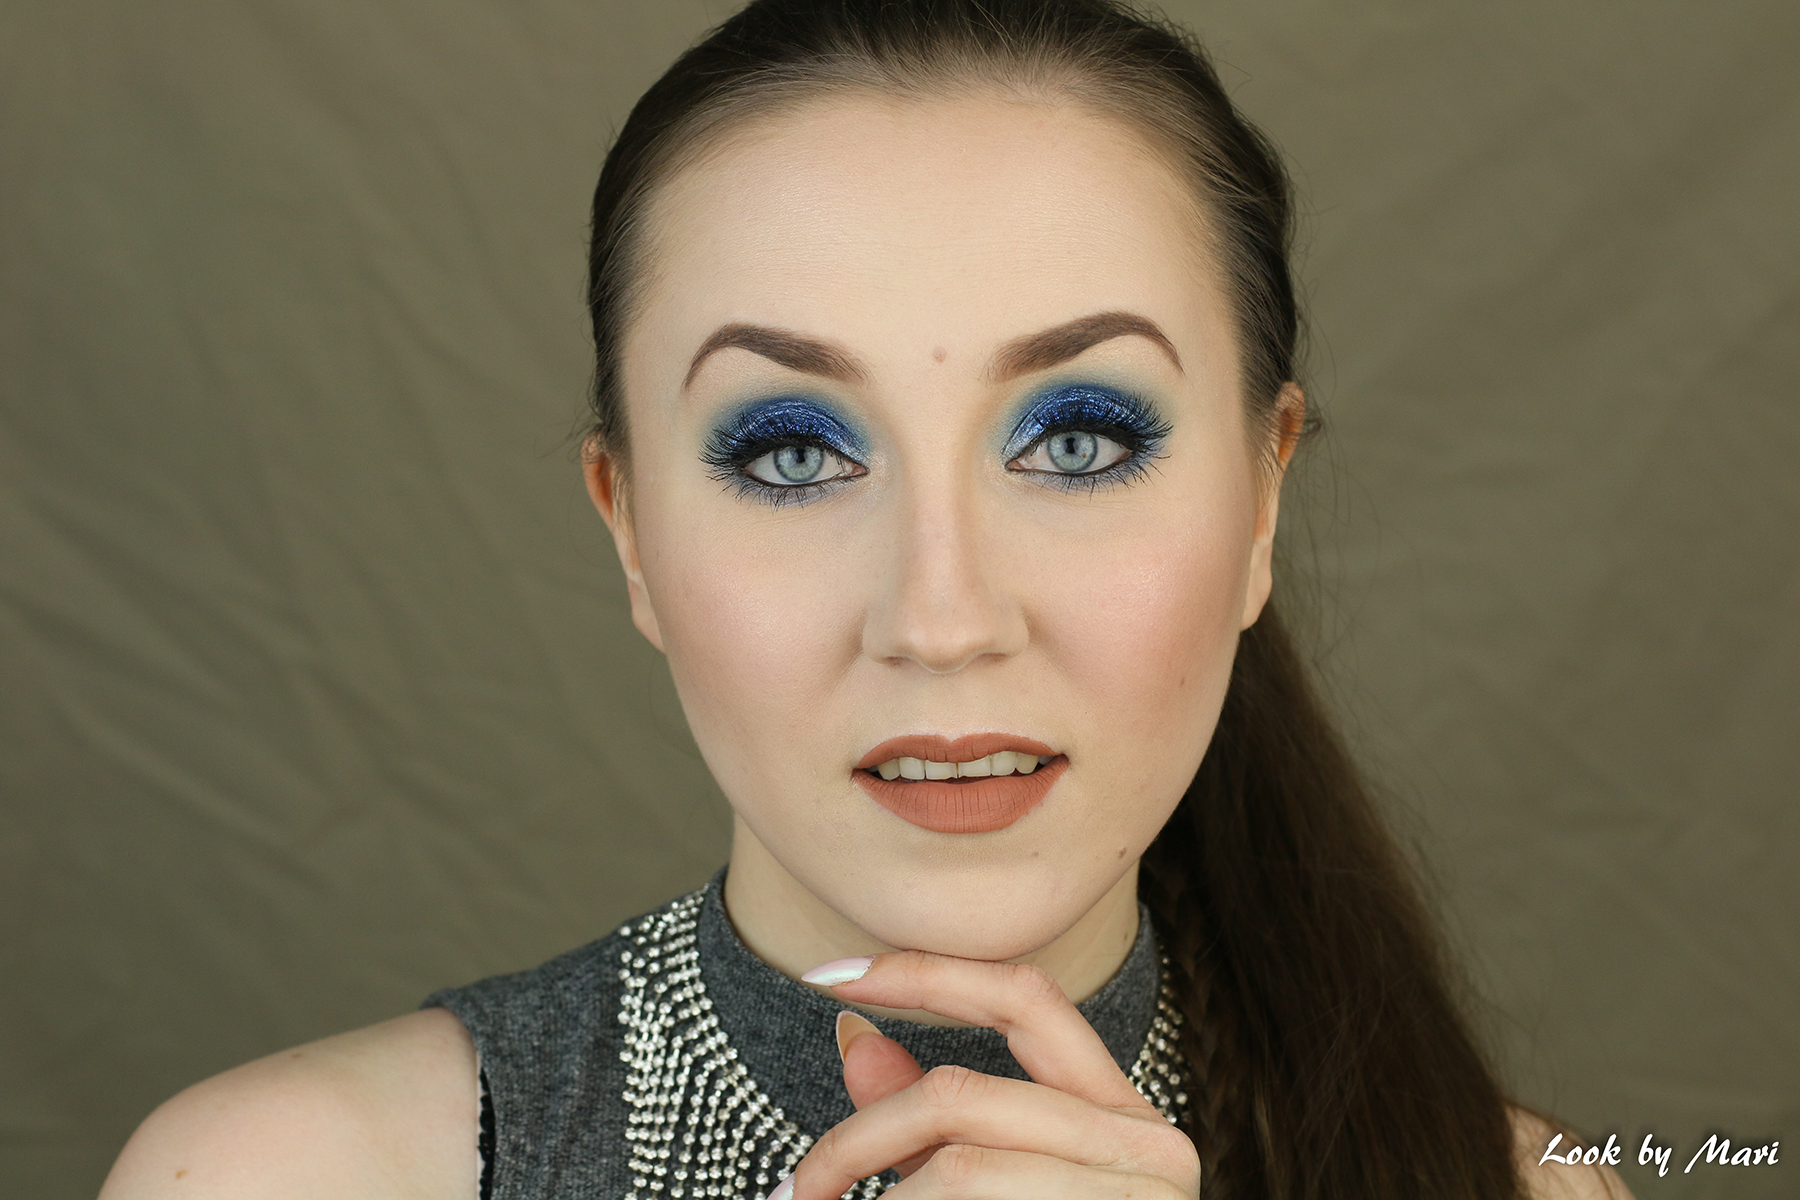 3 nyx face & body glitter 01 Blue review kokemuksia swatch swatches morphe brushes 35U palette